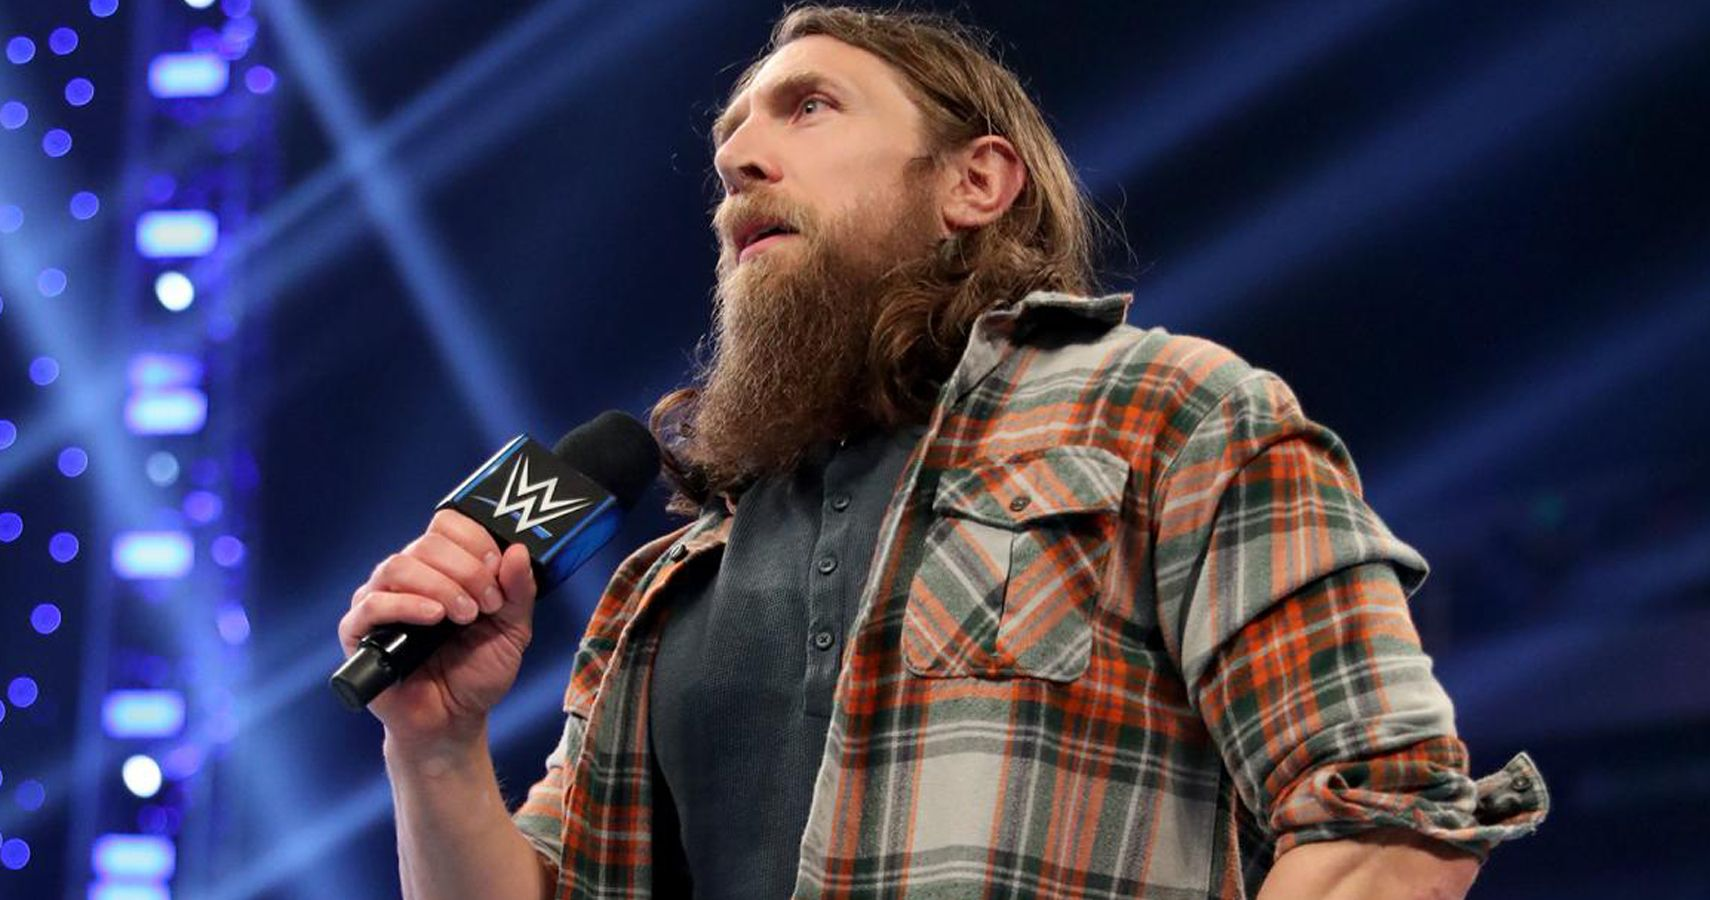 Daniel Bryan Has Odd But Cool Request For WWE And His New